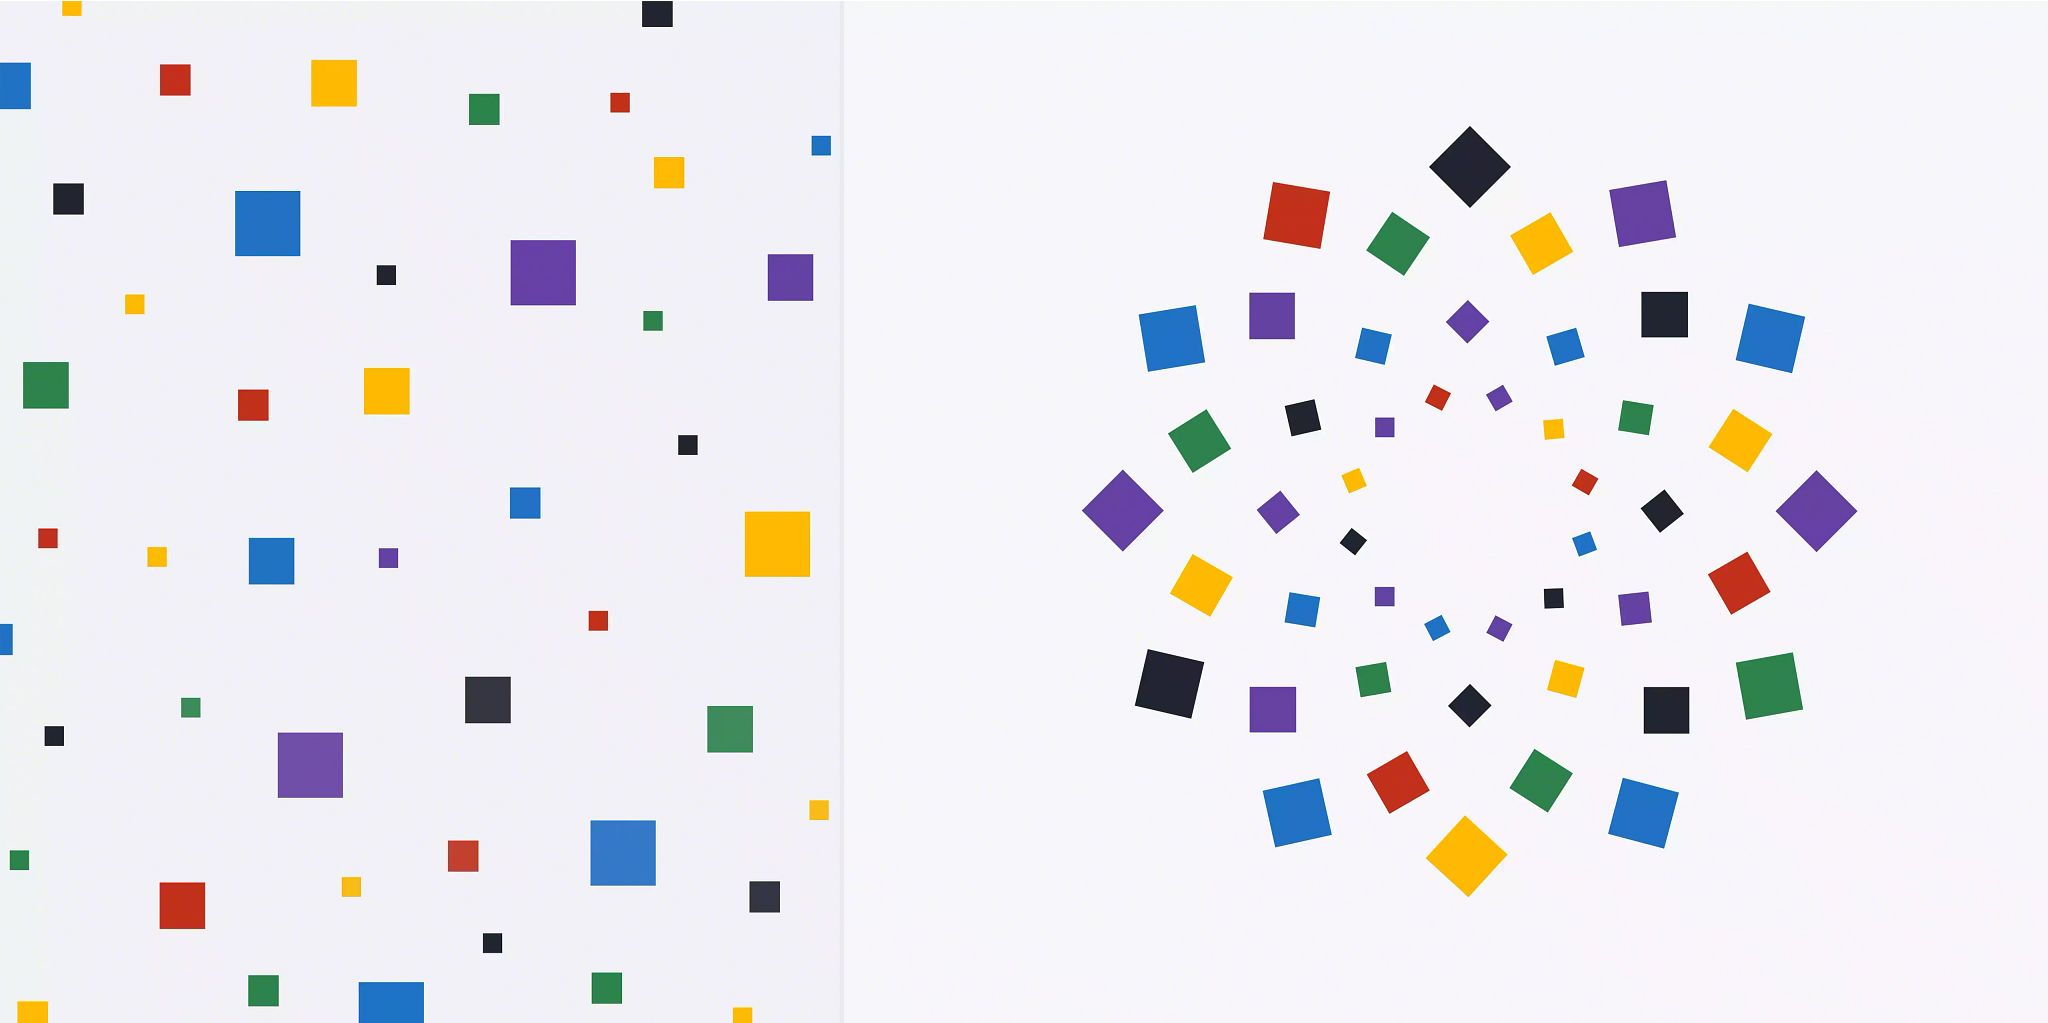 Article header image: Graphic is divided in half down the middle. On the left is solid colored boxes in varying sizes spread throughout the width and height of the half. On the other side, all of the same colored boxes have been arranged to form a starburst or flower pattern in the center of the right half of the illustration.